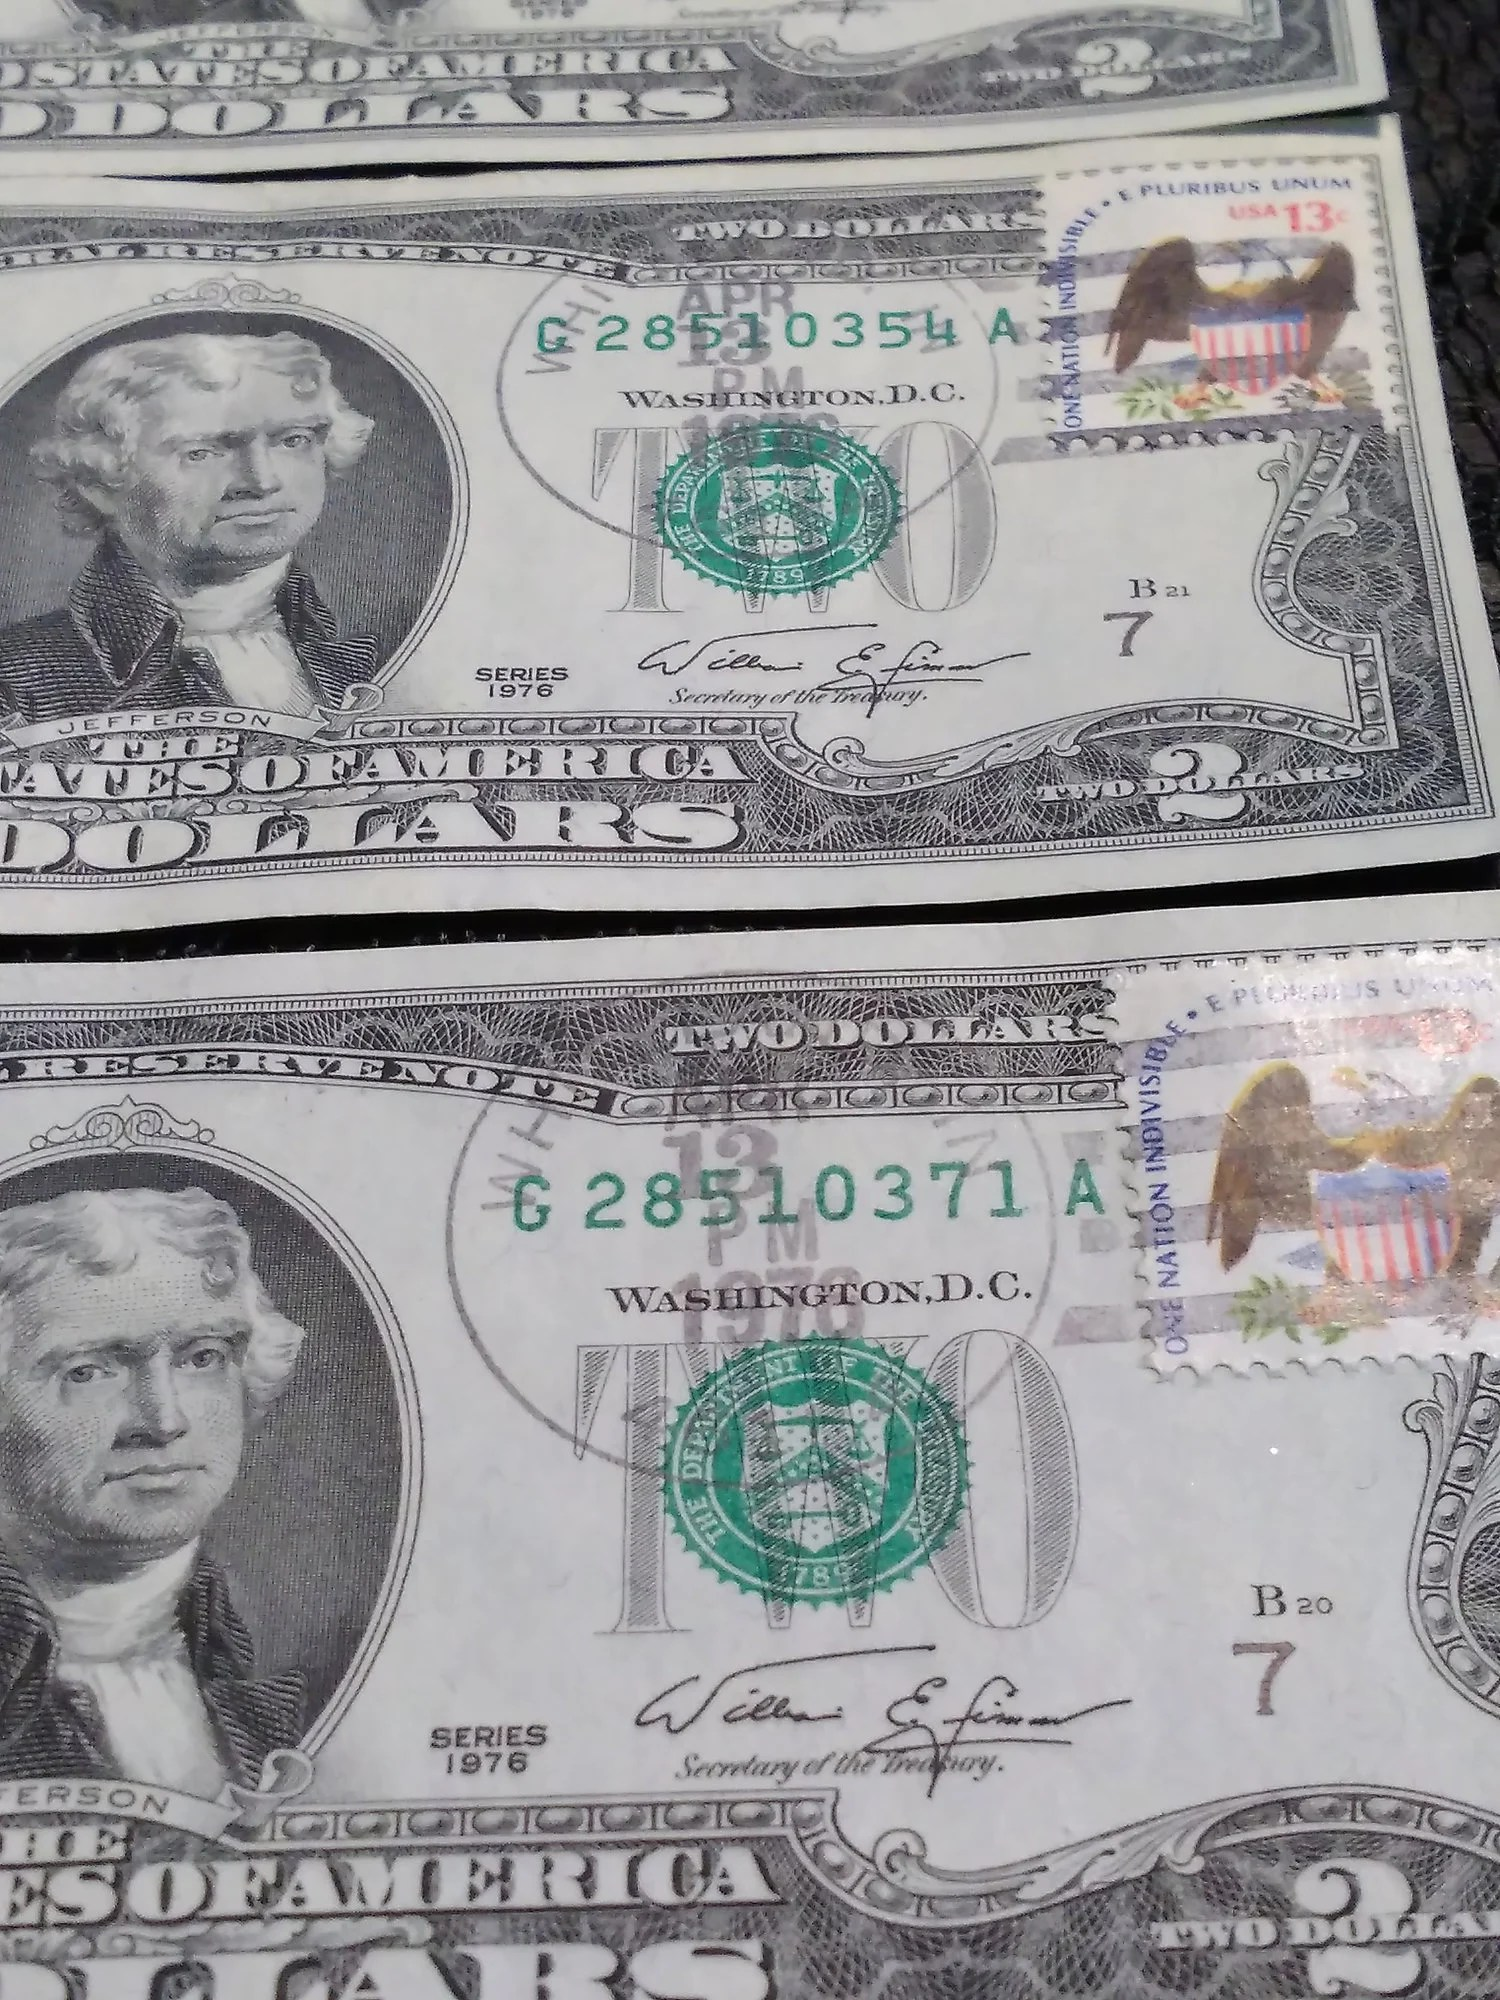 1976 2 Dollar Bills Worth : dollar, bills, worth, Dollar, Bills, Stamps, Condition, Opinions?, Don't, Really, Collectors, Universe